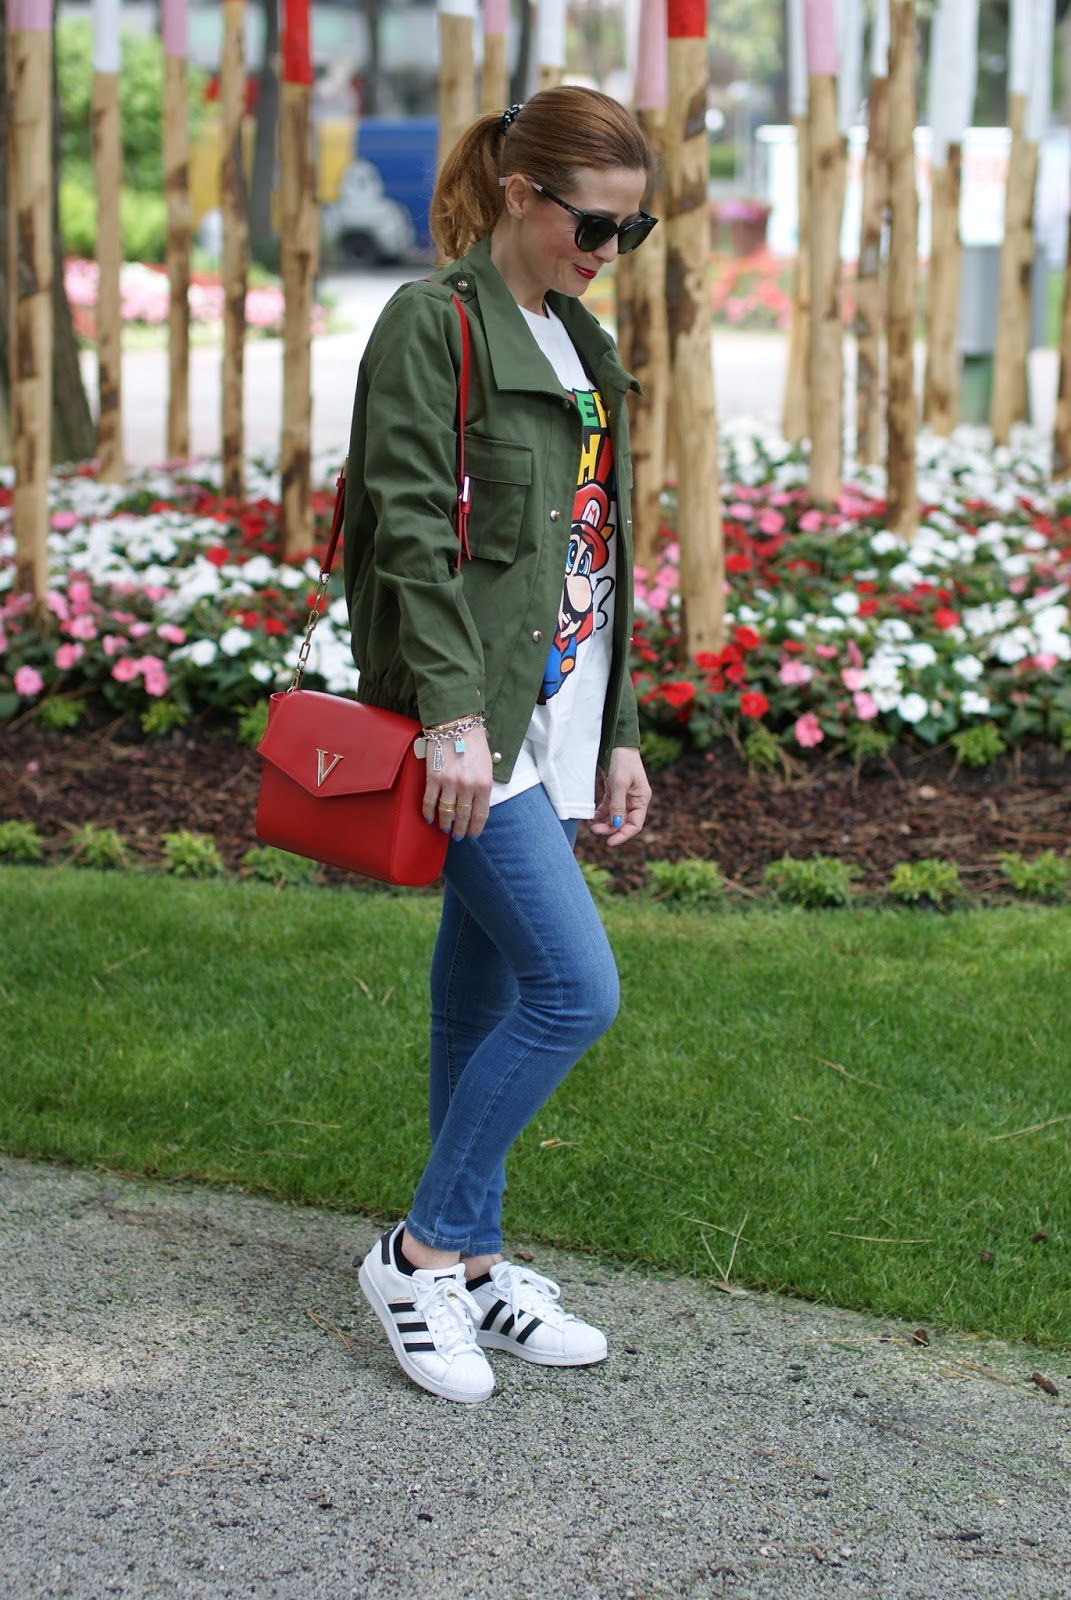 Moschino Super Moschino t-shirt with Super Mario bros, Lookbook Store army green jacket and adidas superstar sneakers on Fashion and Cookies fashion blog, fashion blogger style